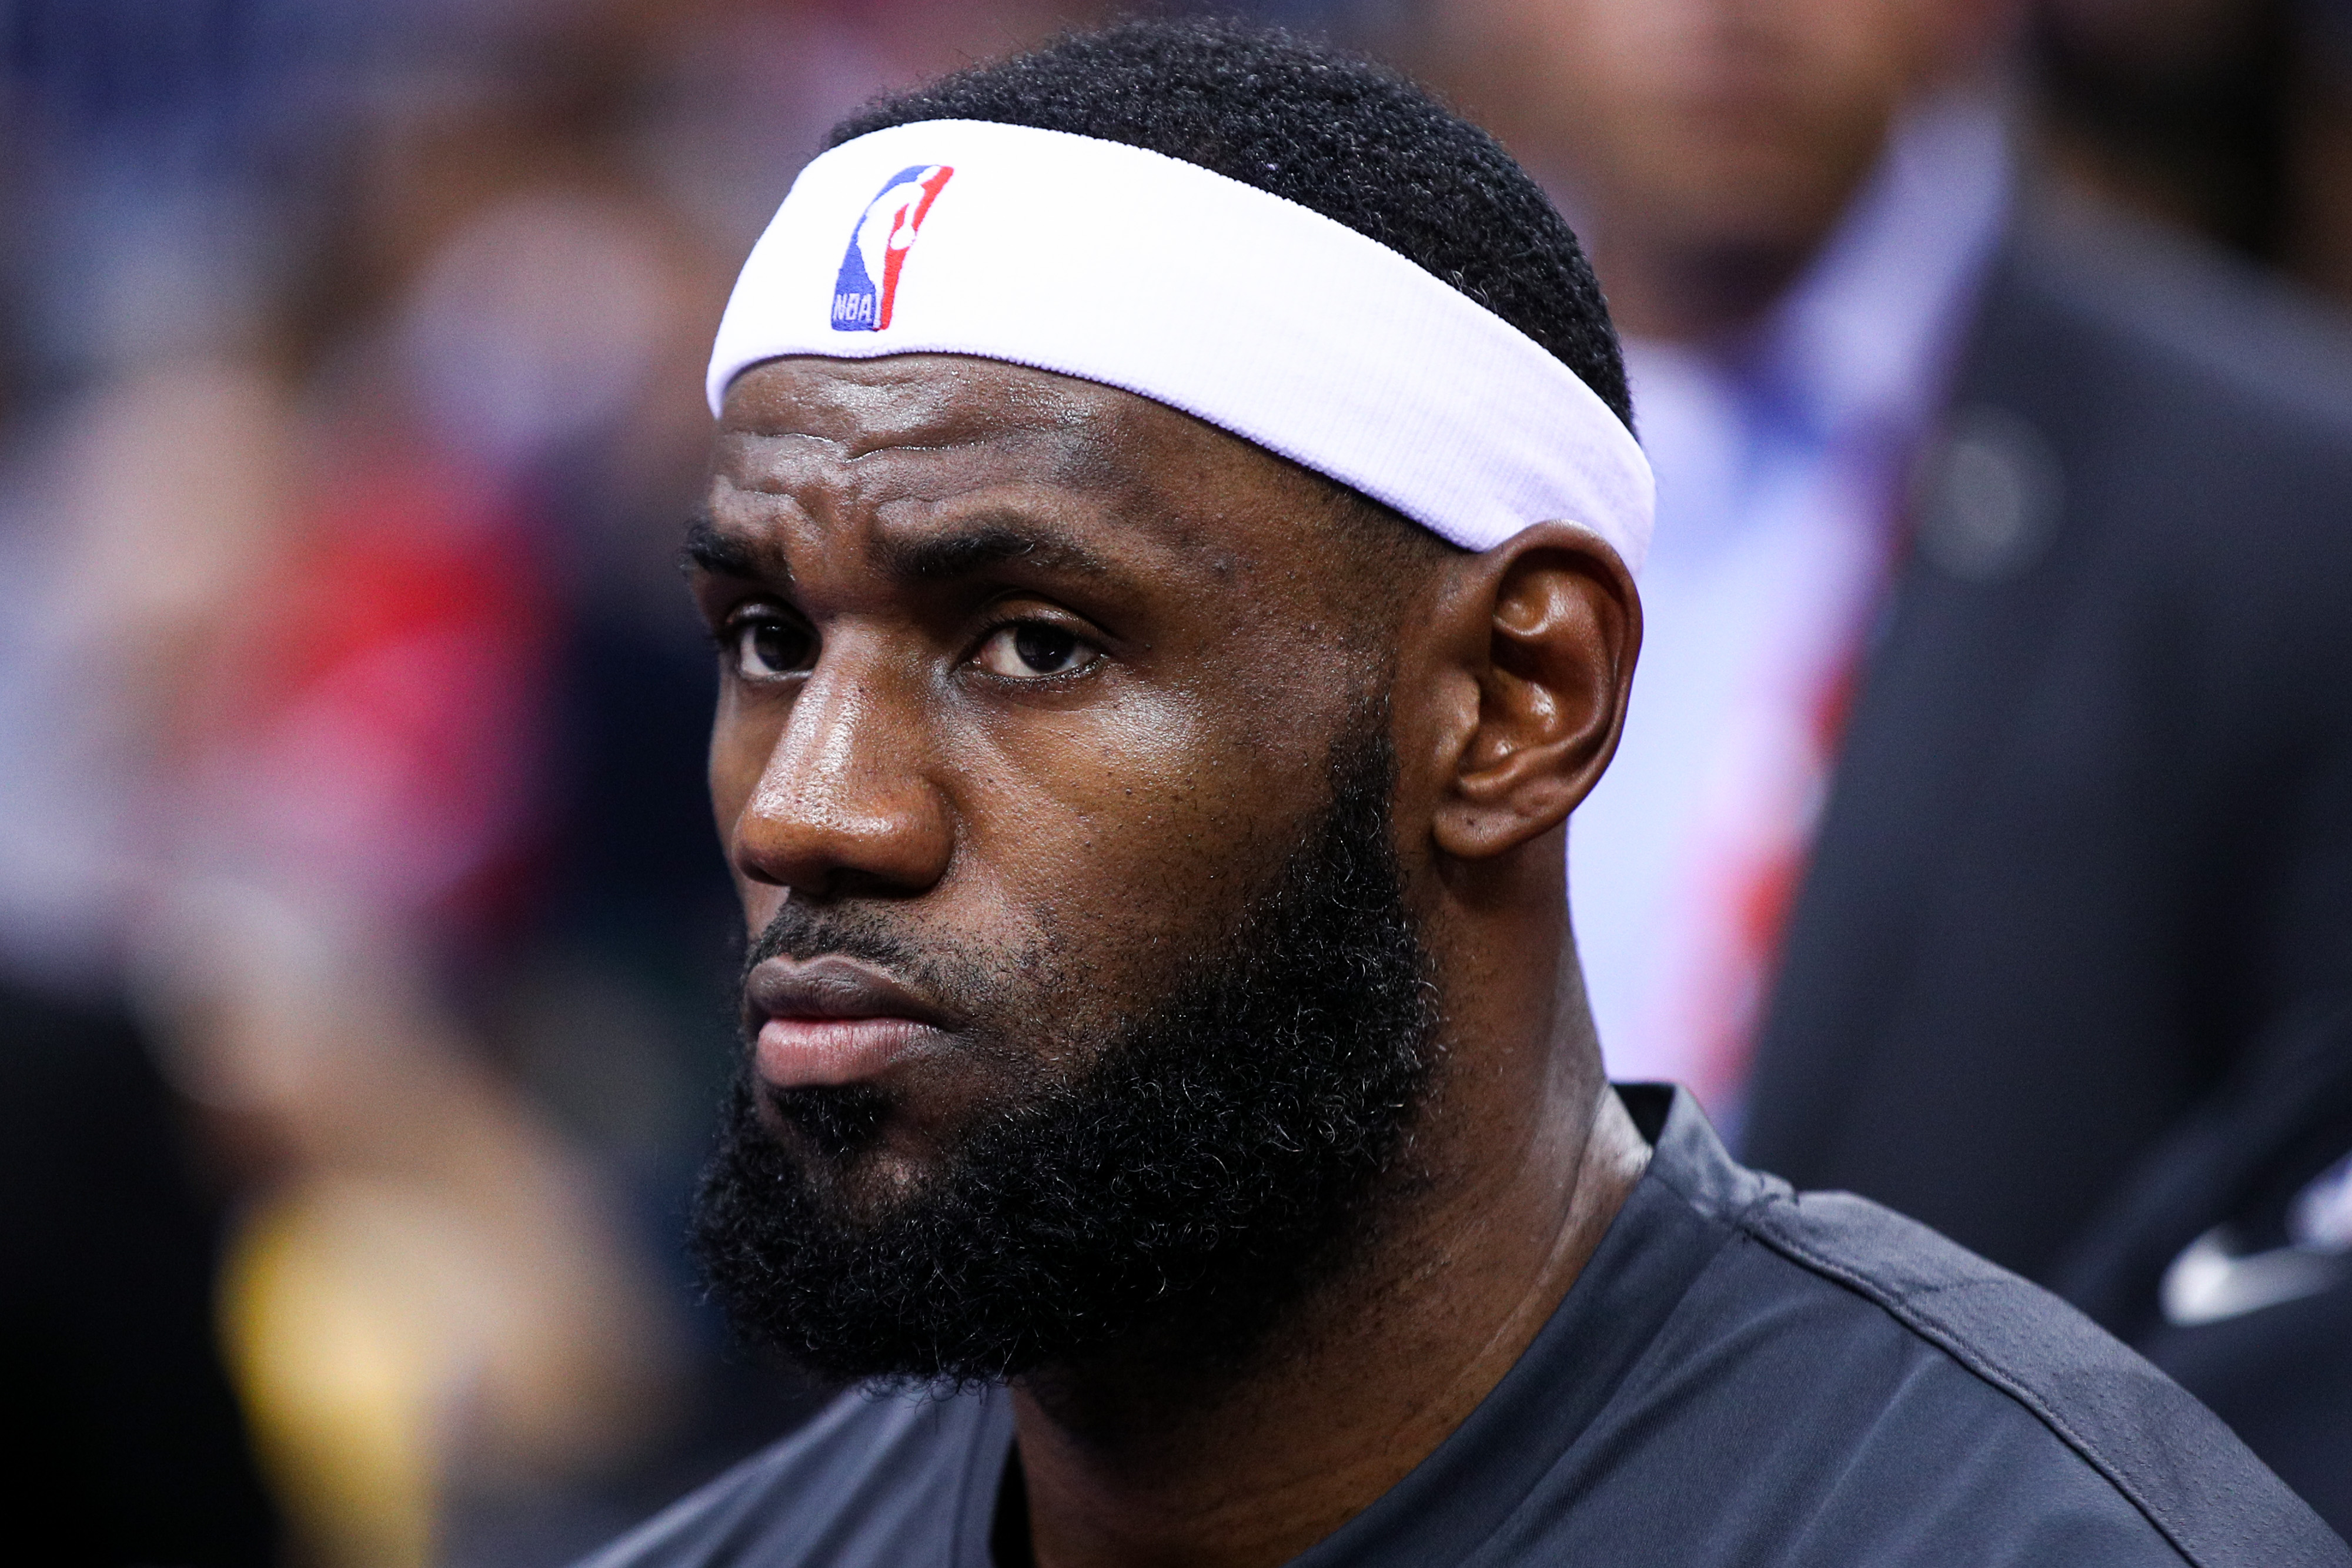 LeBron James Addresses Hong Kong Situation: 'There's Issues All Over the World'